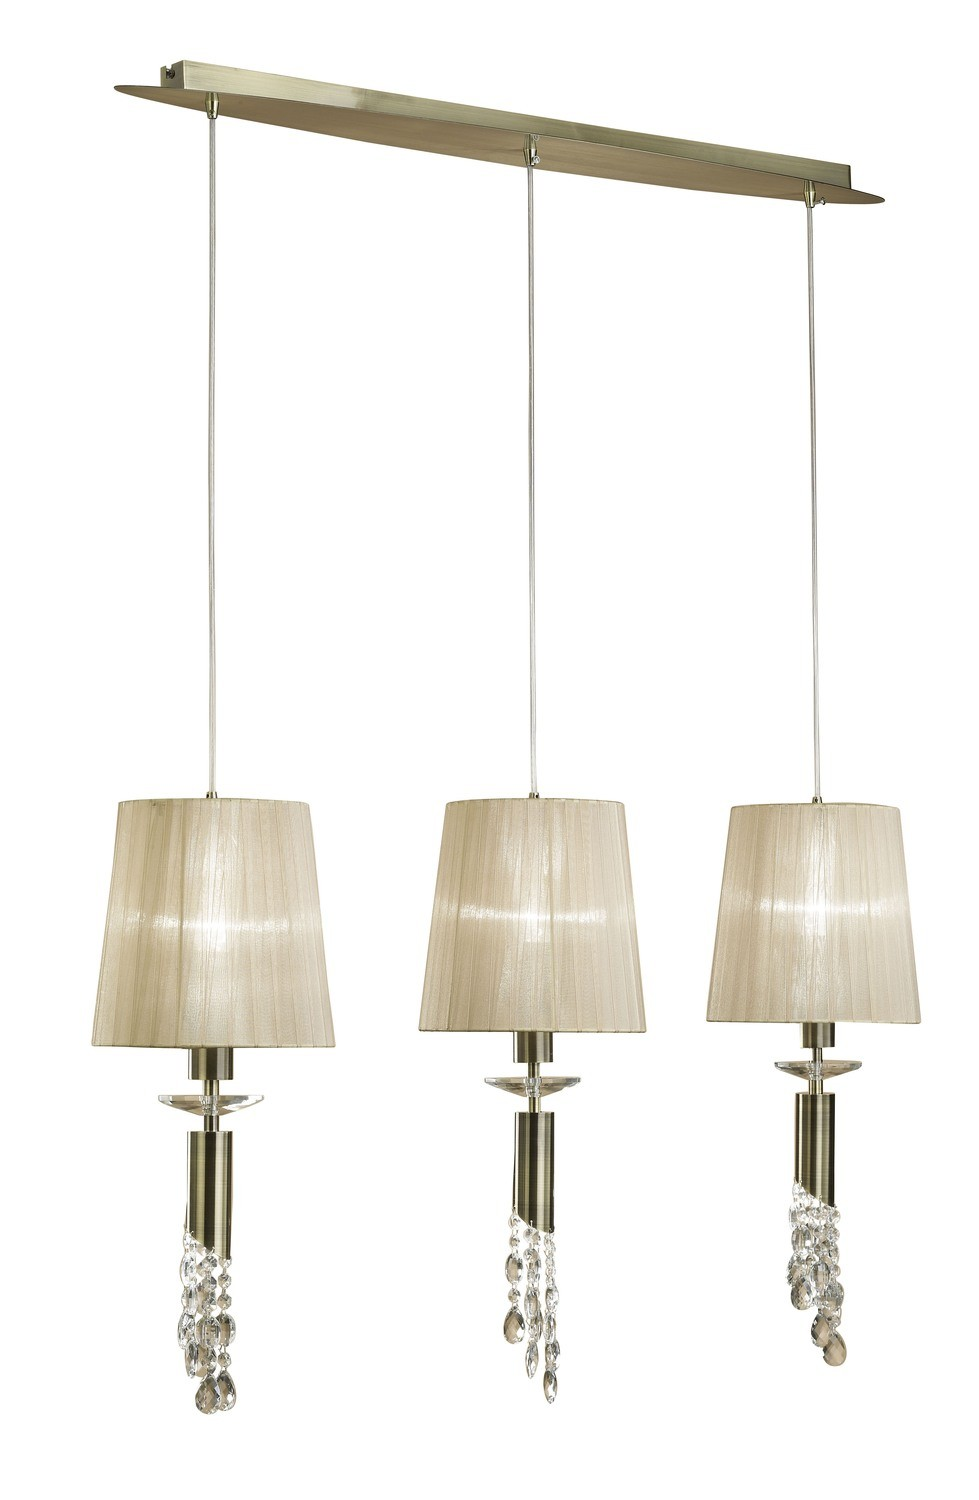 Tiffany Pendant 3+3 Light E27+G9 Line, Antique Brass With Soft Bronze Shades & Clear Crystal